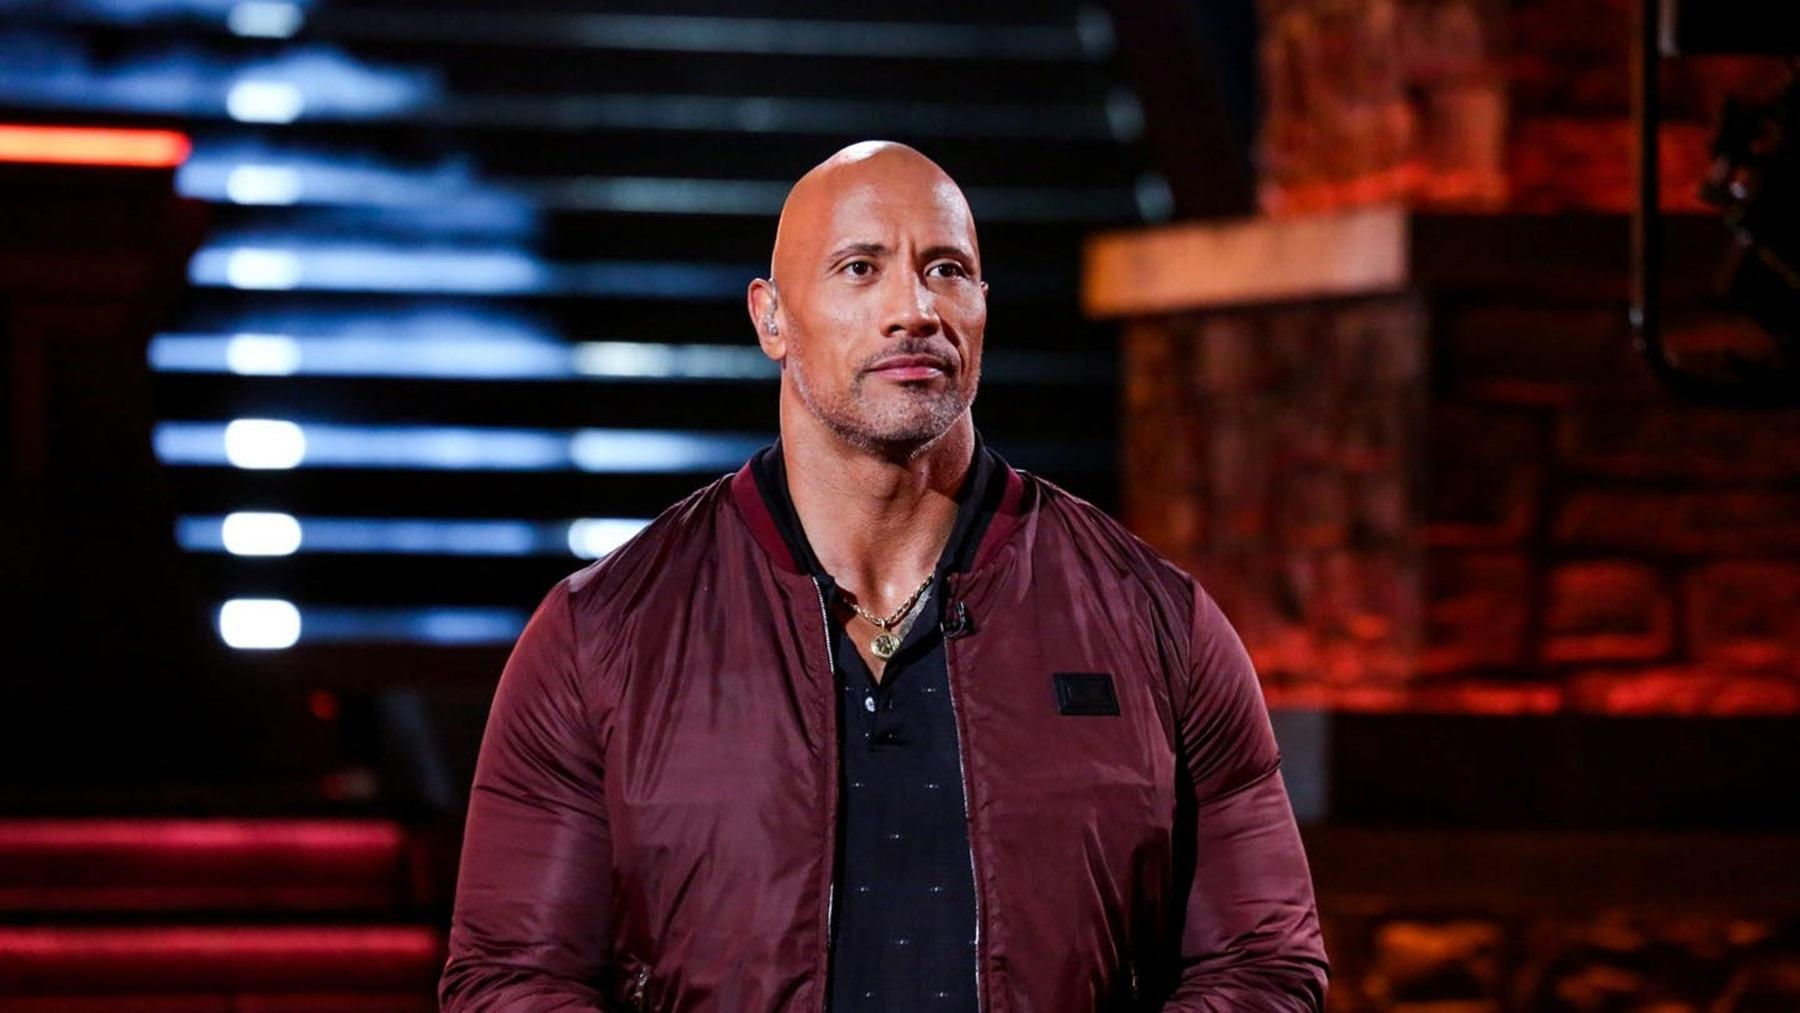 Dwayne Johnson Hints At Reunion With Vin Diesel On The Next 'Fast And Furious' Movie With Warm And Cuddly Video